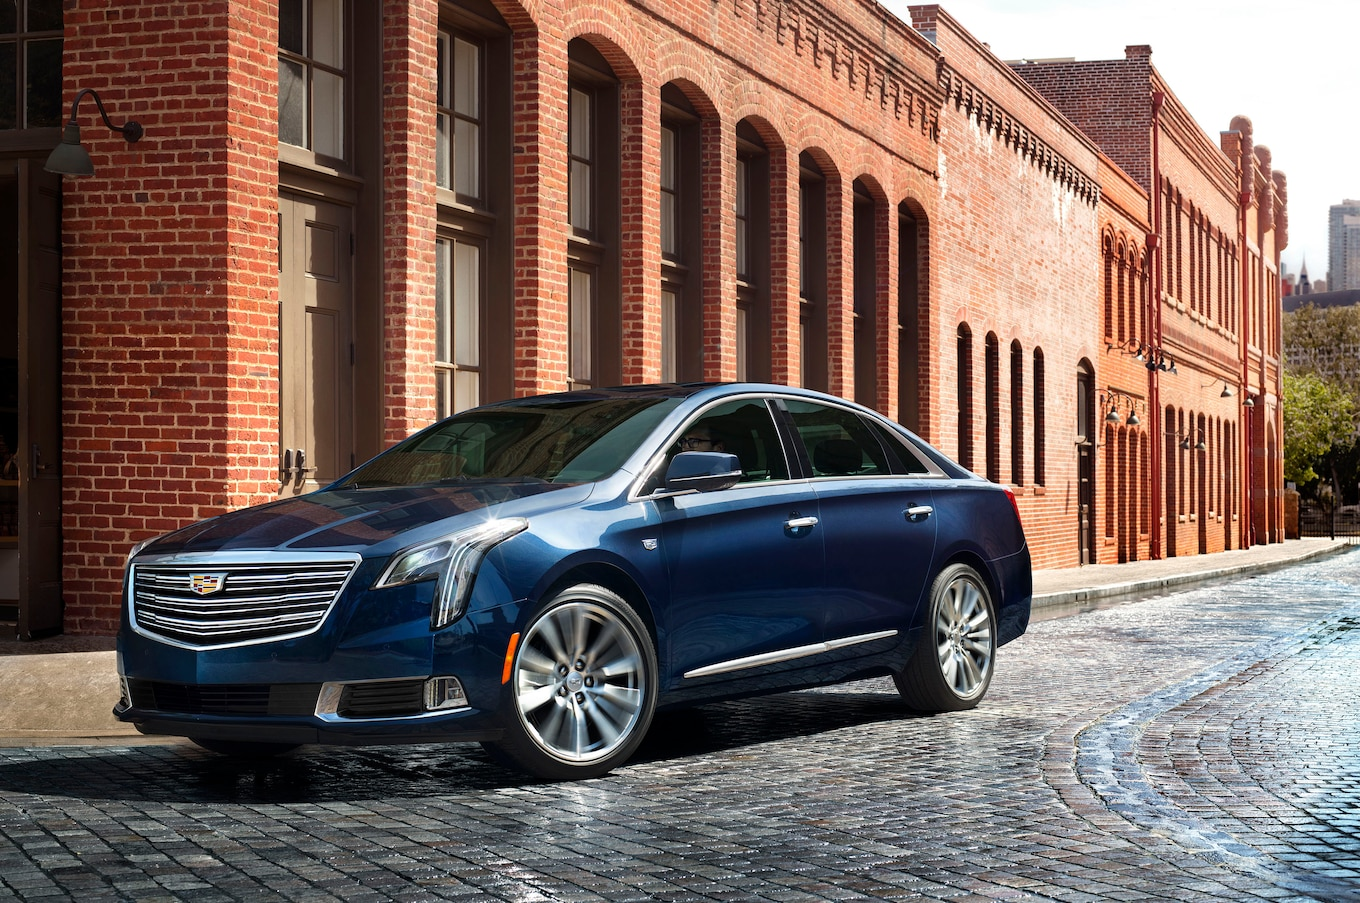 2018 Cadillac XTS Now Looks More Like the CT6 - Motor Trend